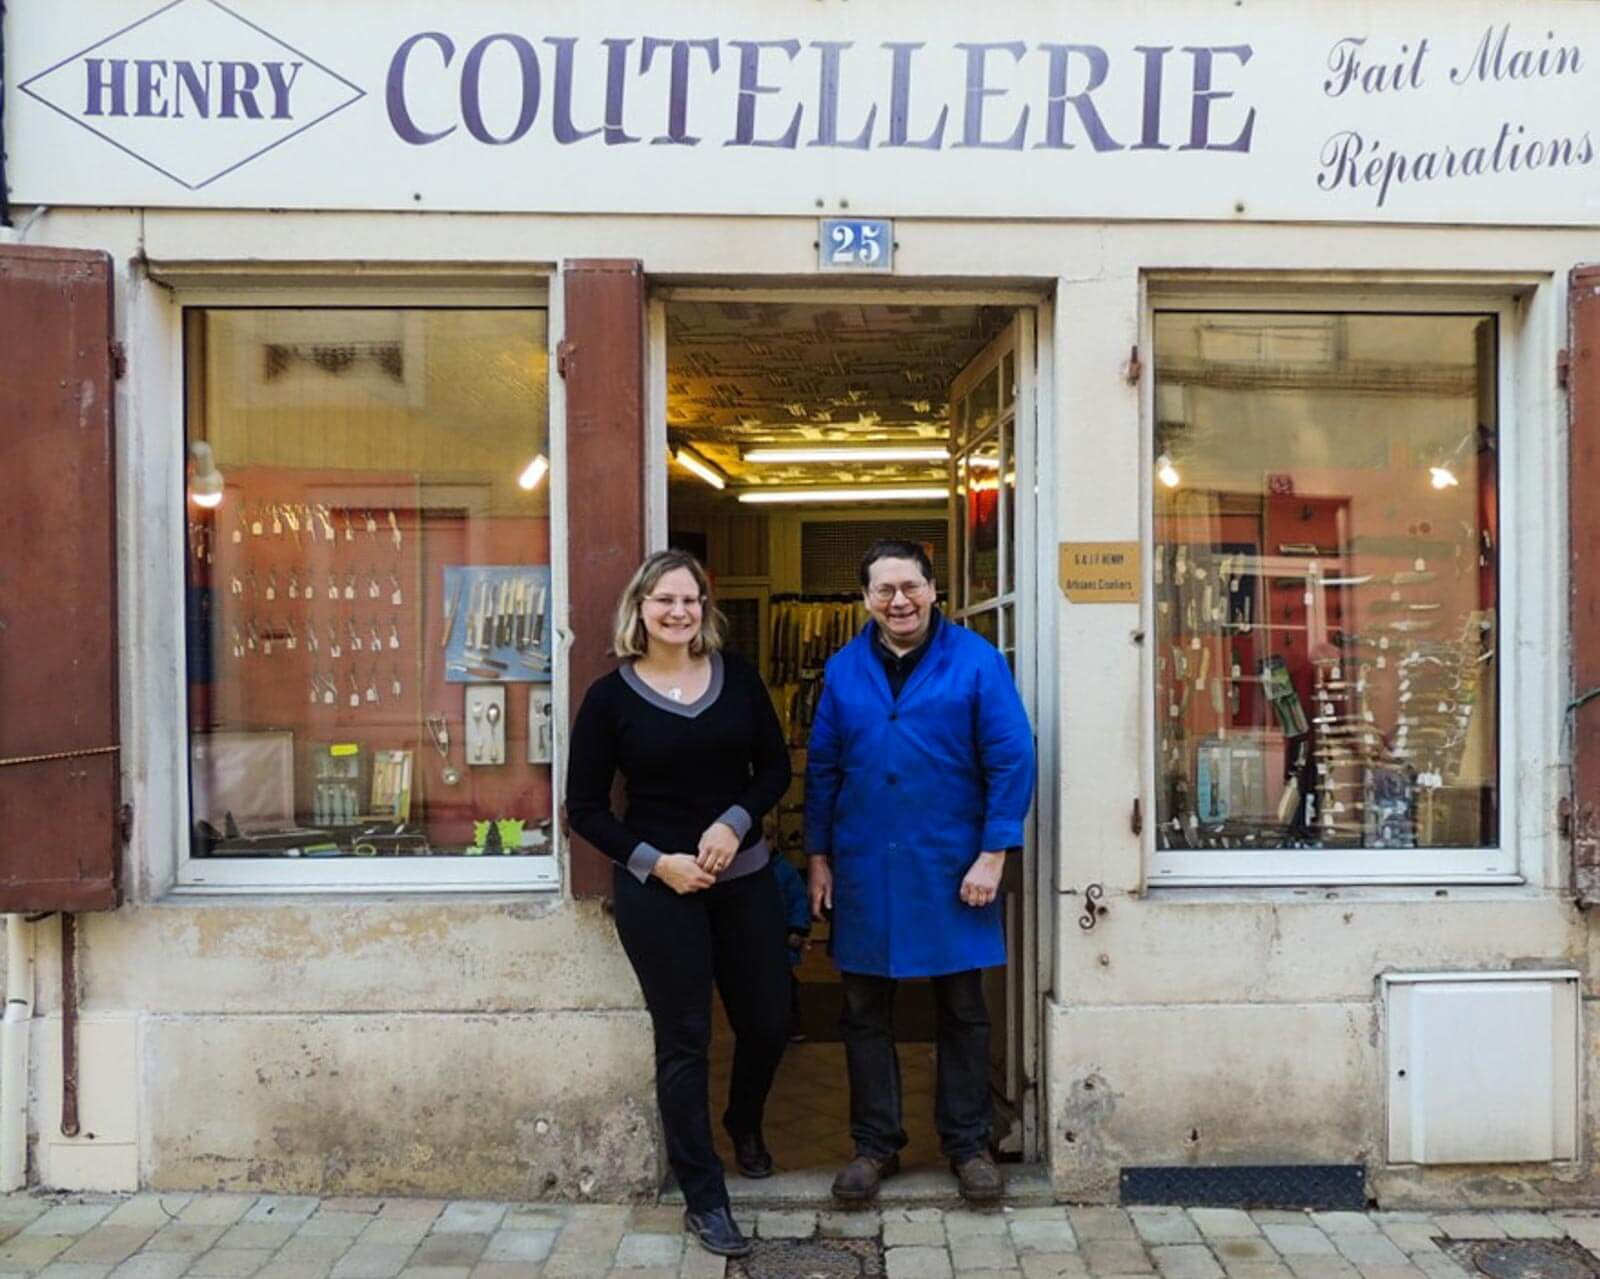 Coutellerie Henry coutellerie-henry-nogent-1-1 Nous contacter